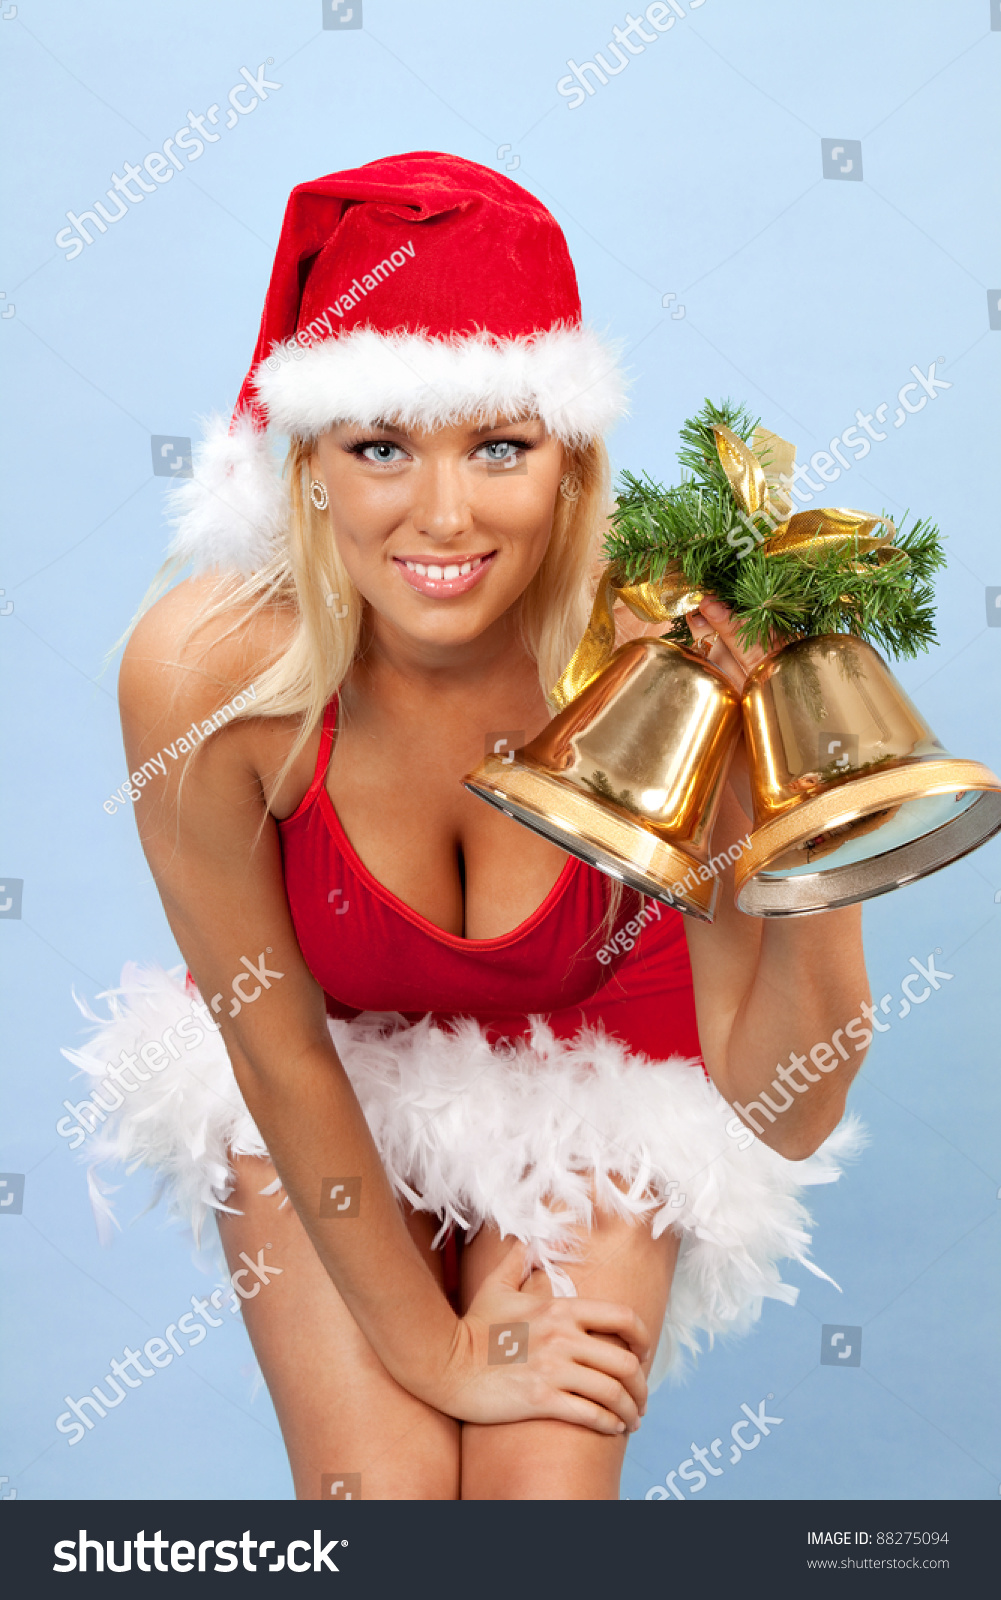 36d821c36 portrait of beautiful young woman wearing santa claus clothes with bells